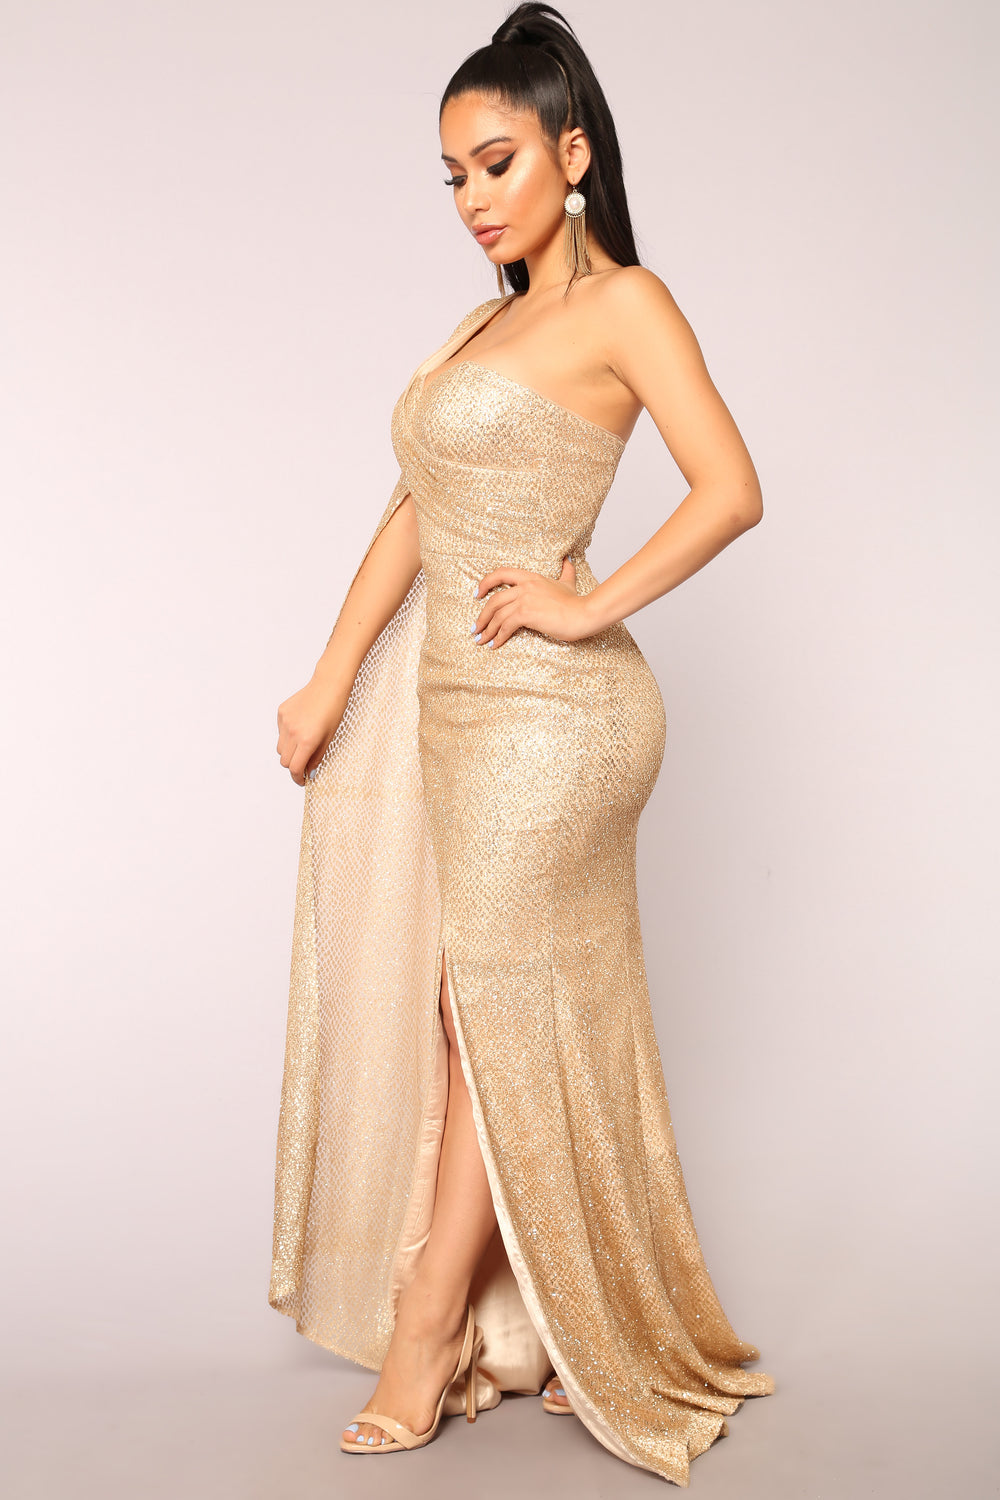 Golden Era Glitter Dress - Gold